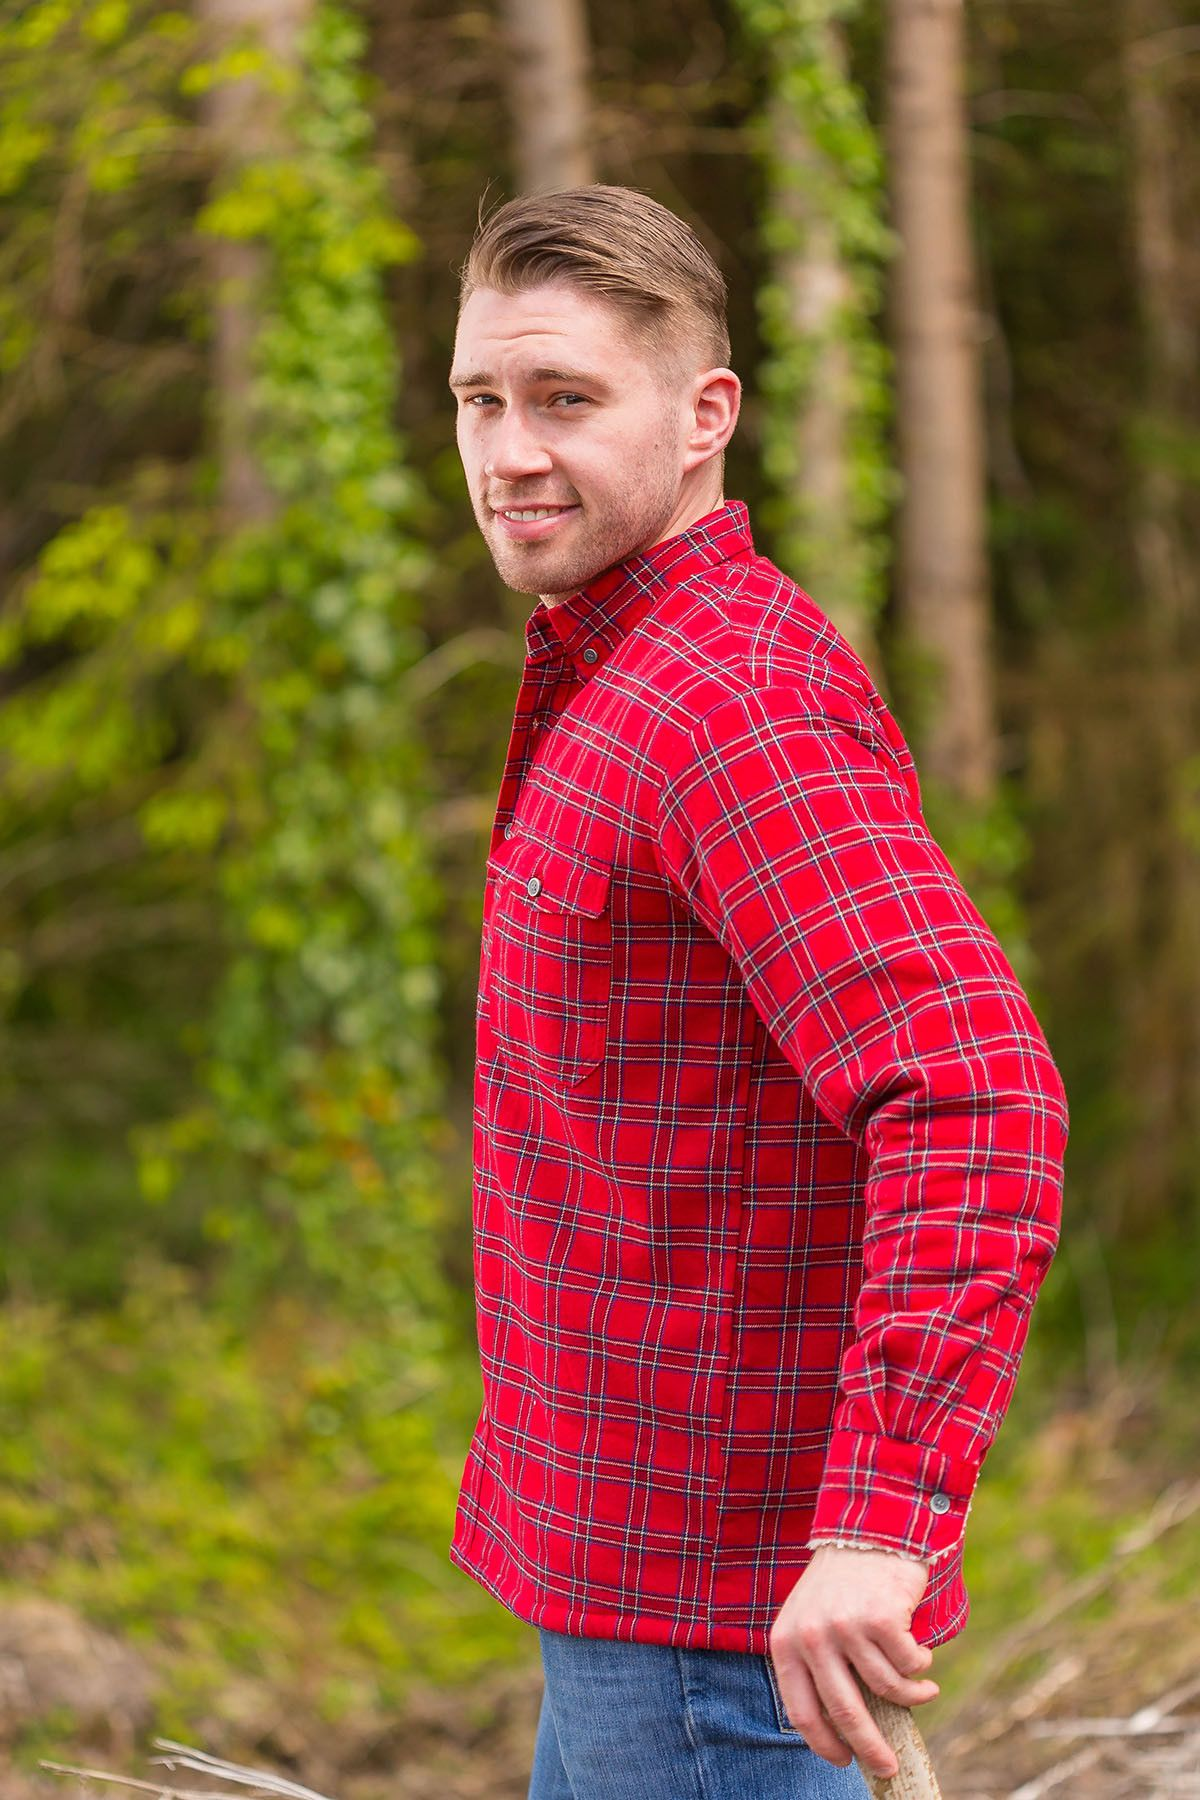 69b890b4 Collar Shirt Mens Cotton Flannel Red Tartan-Royal Stewart (LV27) #shopirish  #collarless #aranjumpers #irishshirts #granddadshirt #collarlessshirt ...